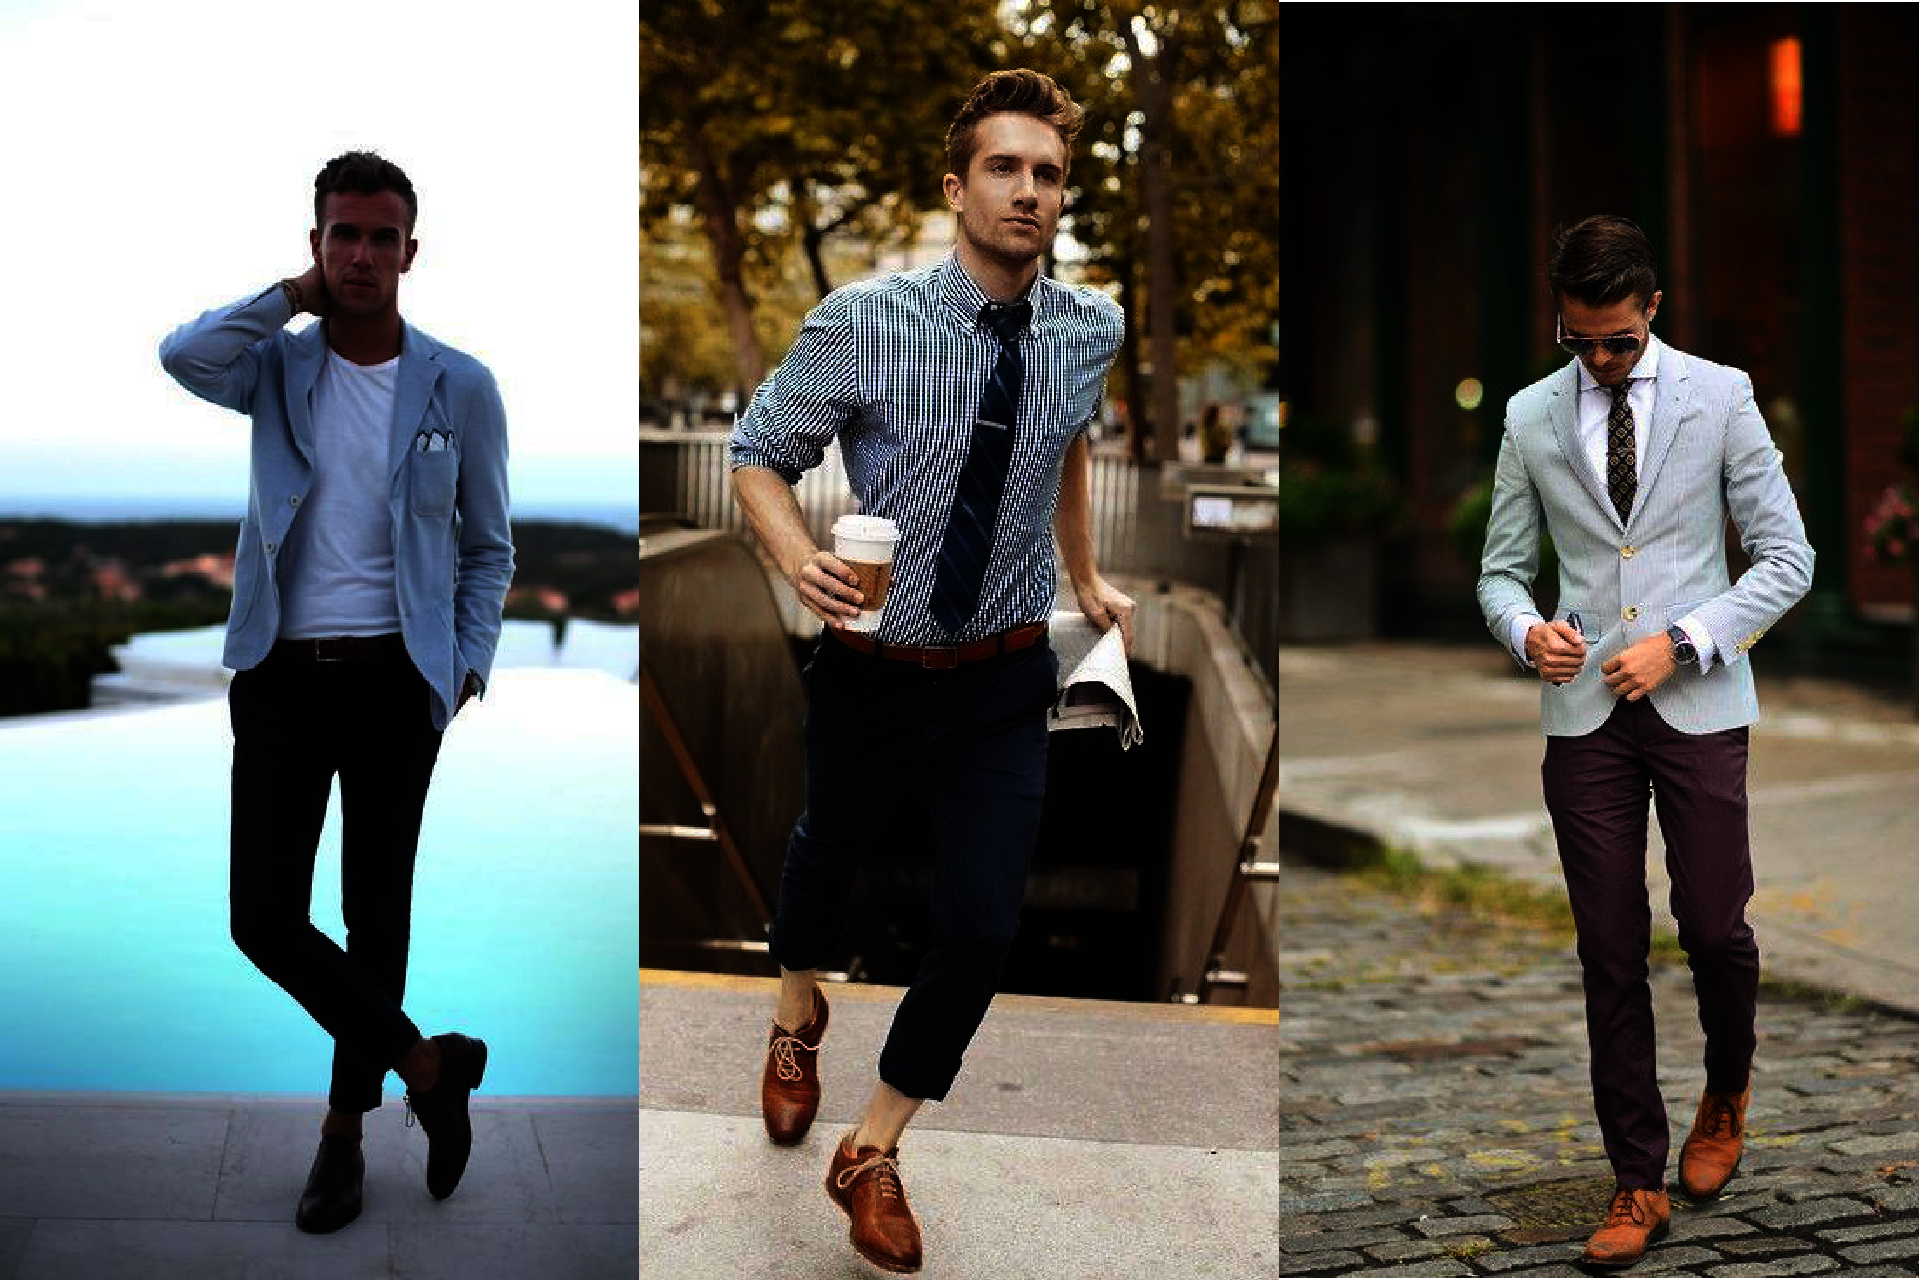 How to wear Oxford? Smart Casual oksfordy, Business Casual Oxfordy